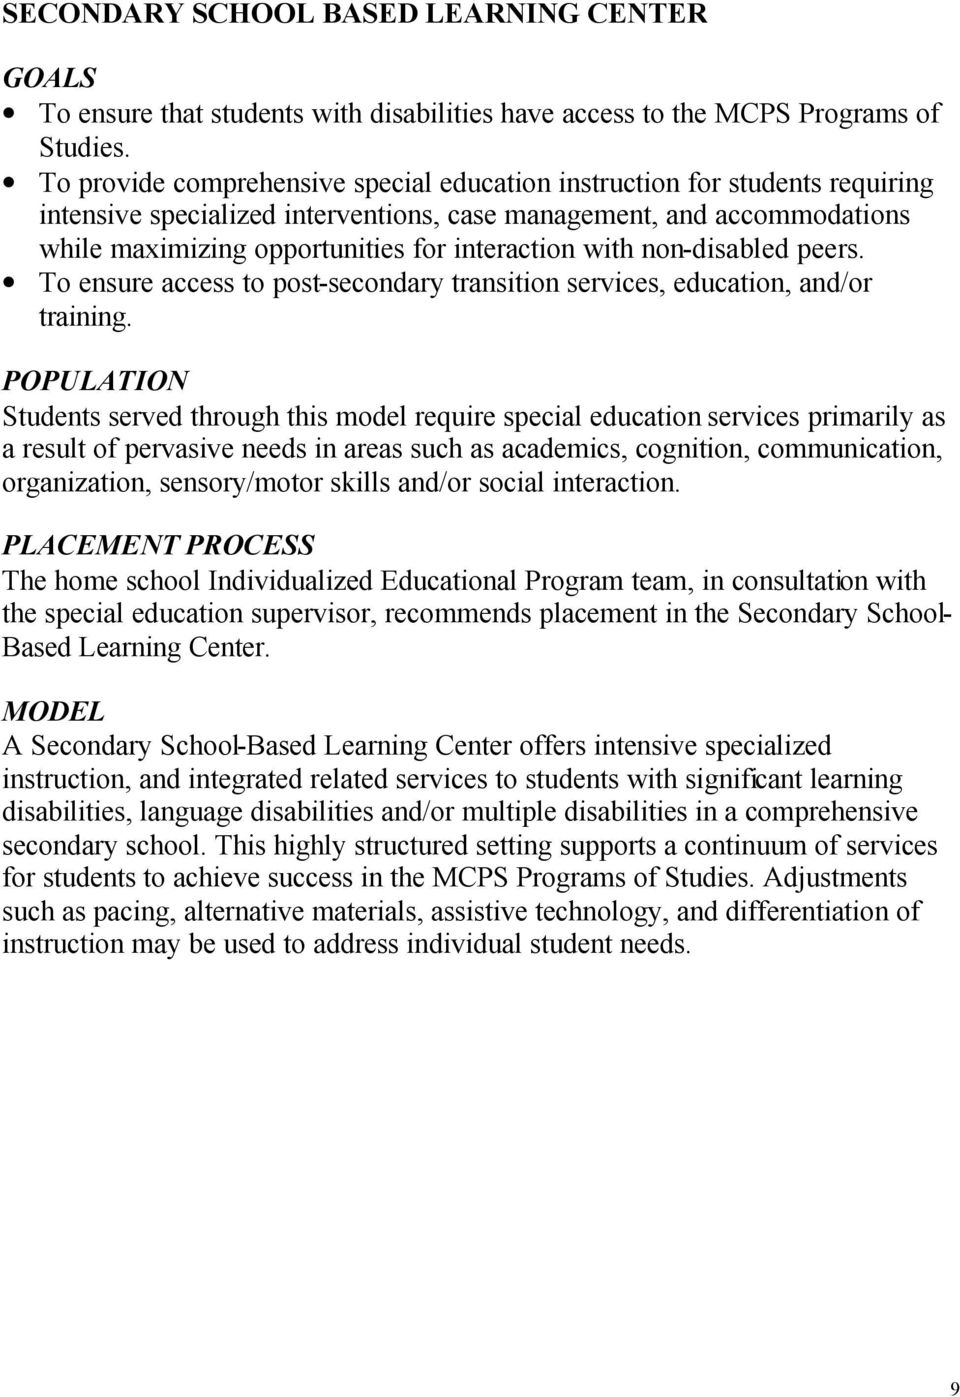 with non-disabled peers. To ensure access to post-secondary transition services, education, and/or training.